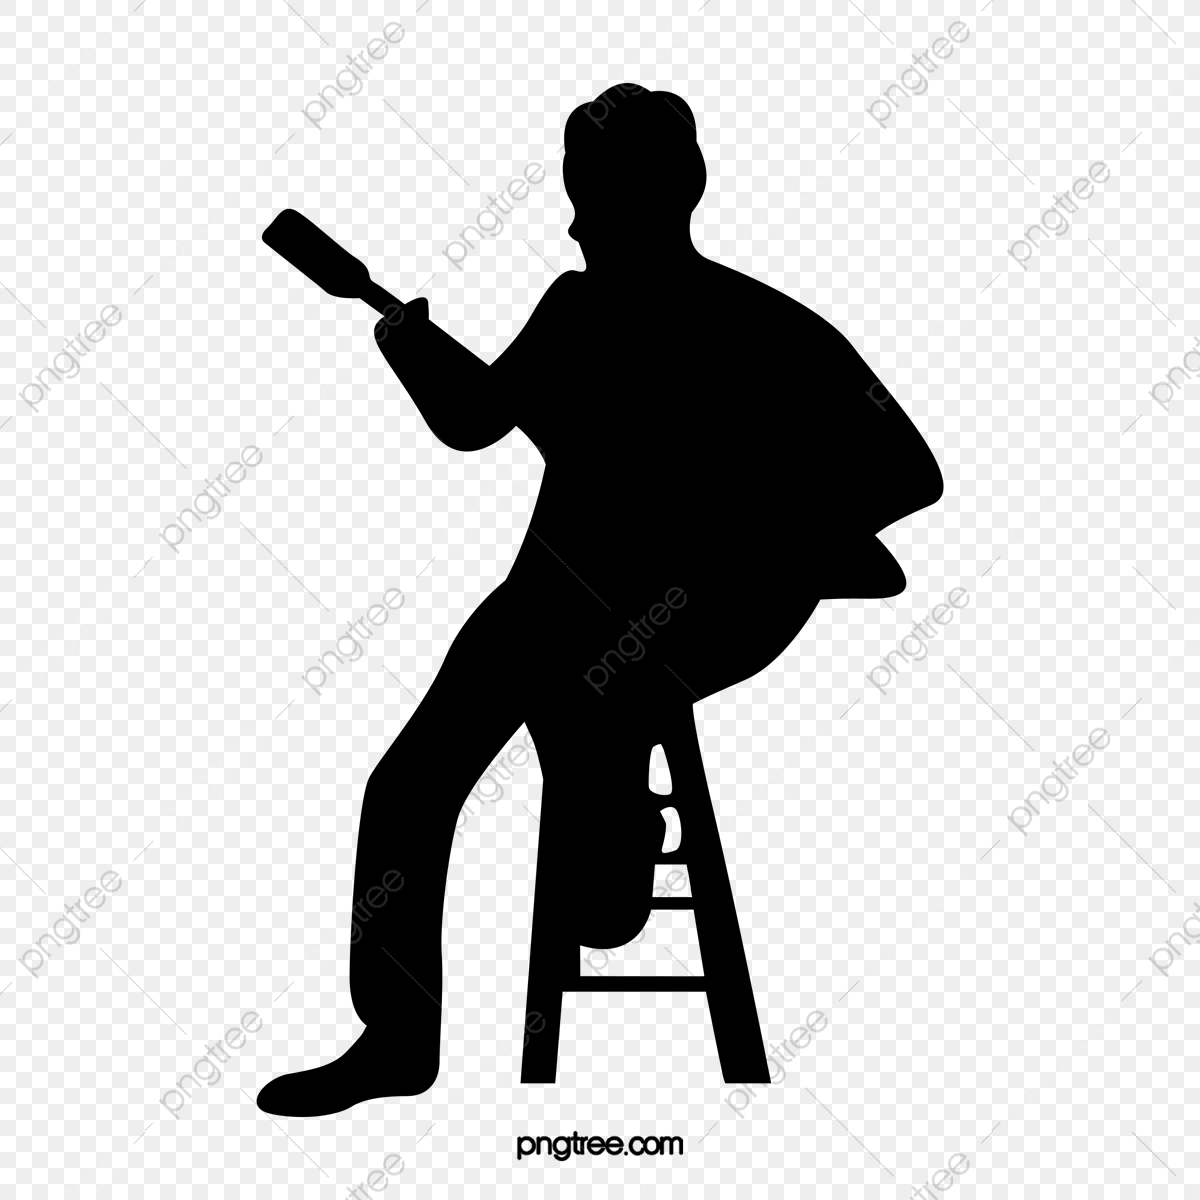 Guitar Silhouette Image Guitar Clipart Guitar Silhouette Silhouette Image Png Transparent Clipart Image And Psd File For Free Download Rock guitarist marching band electric guitar player guitarist playing guitars boy. https pngtree com freepng guitar silhouette image 211953 html